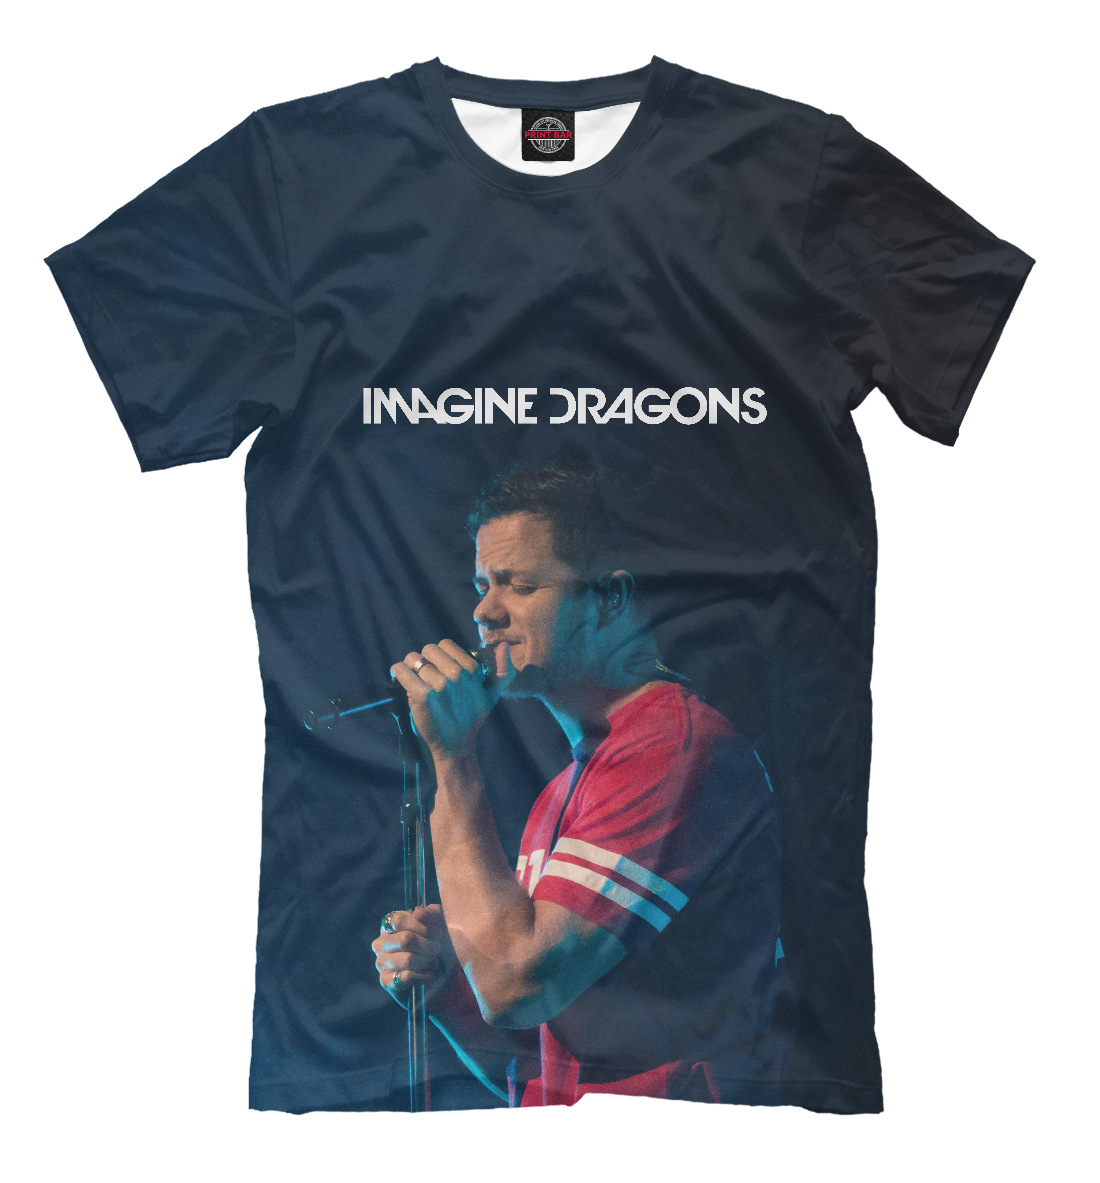 Купить Imagine Dragons, Printbar, Футболки, IMA-925804-fut-2